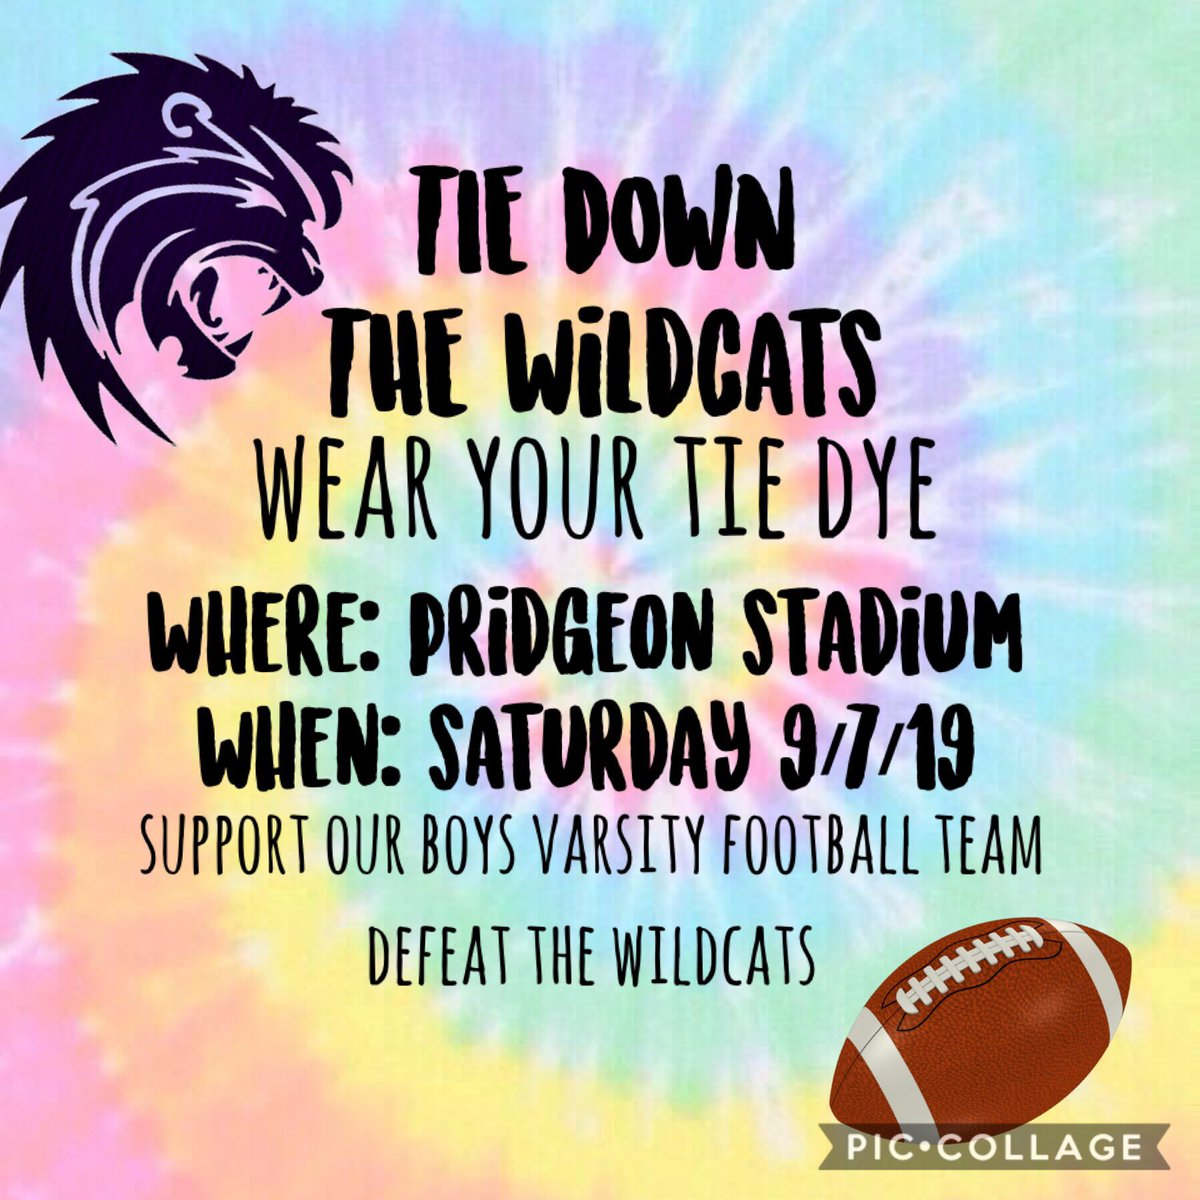 Saturday get ready to tie down the wildcats ! Wear your tie dye to the game and let's cheer on our mighty lions ! 🦁💚 #mbybob #shs #golions https://t.co/JqQRtvgheI